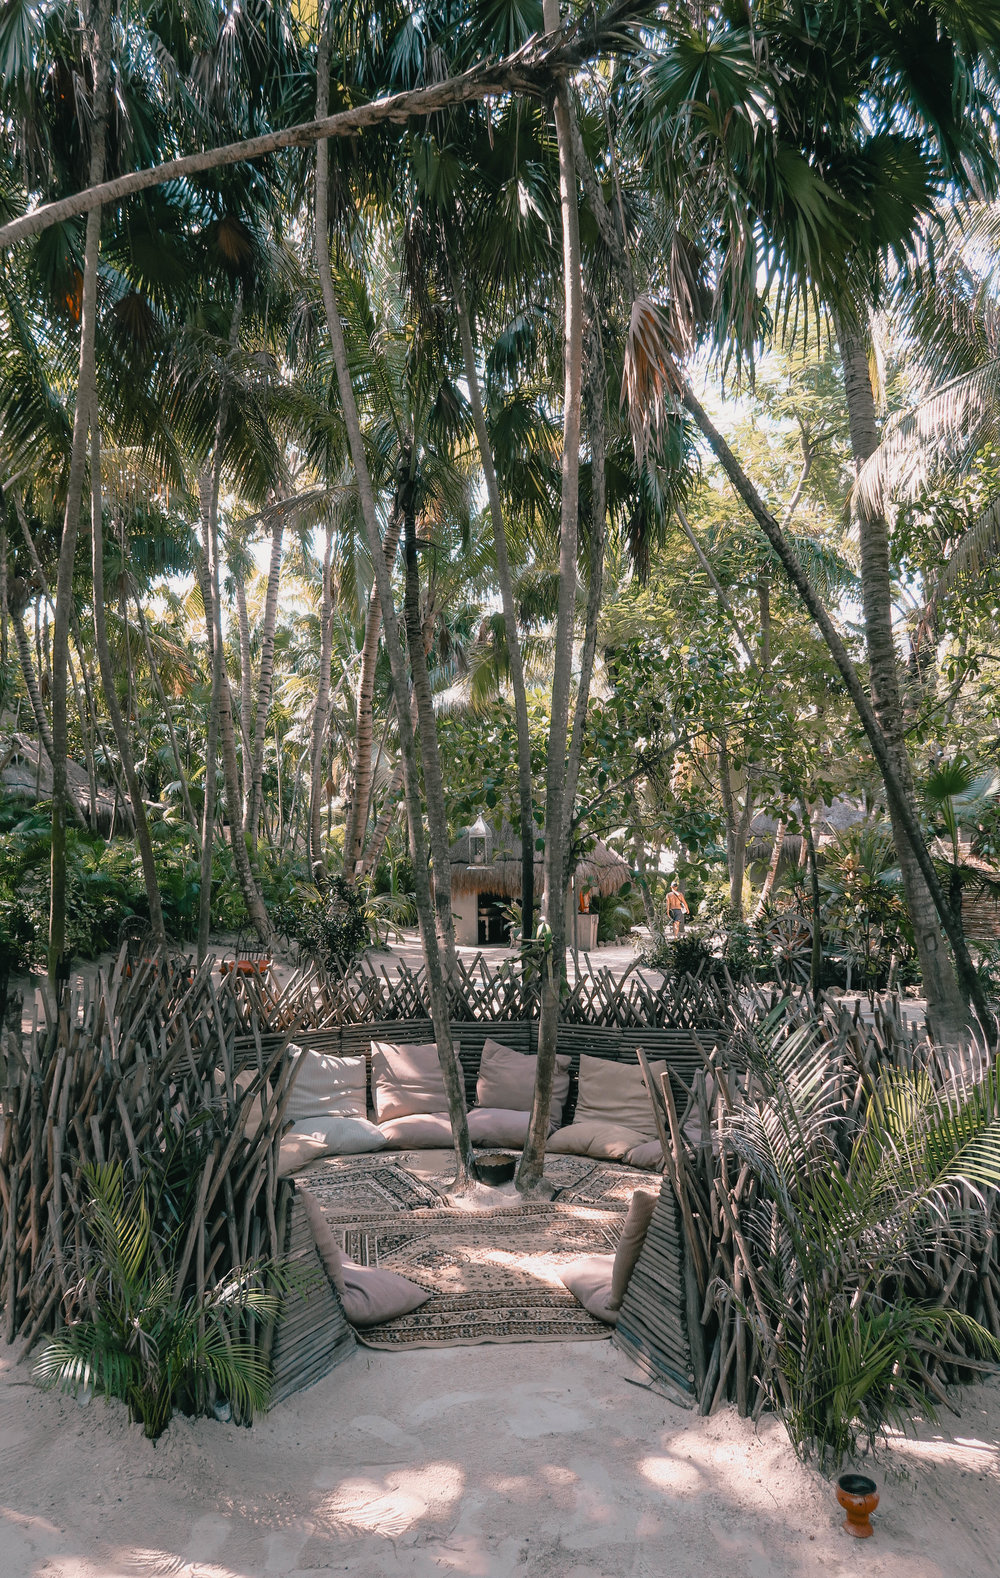 The-Southern-Influence-Nomade-Tulum-October-2017-7.jpg